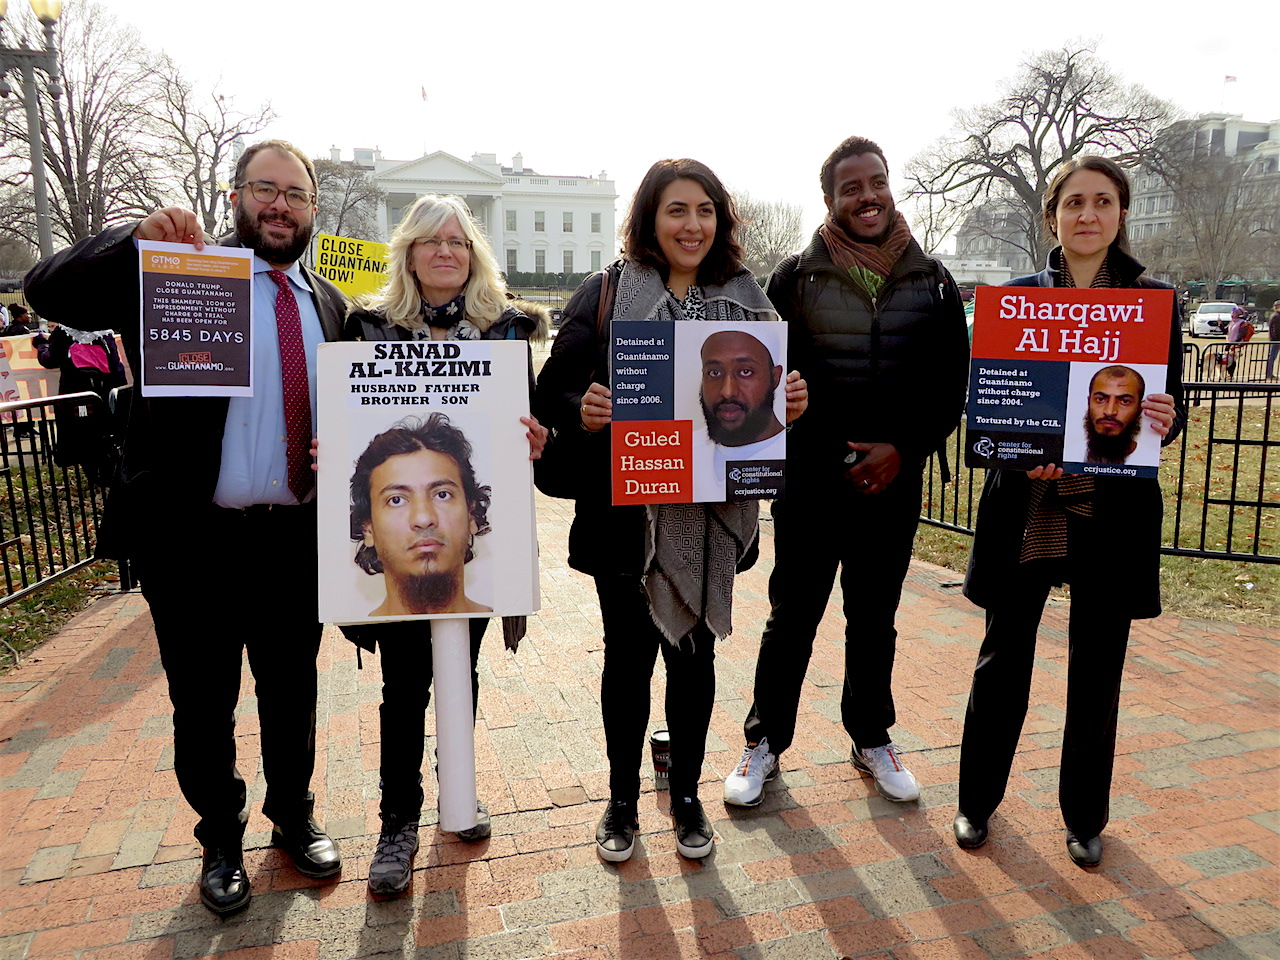 After launching the new lawsuit against Donald Trump, lawyers with the Center for Constitutional Rights came to the White House to join the annual protest against Guantanamo's continued existence (on the left, legal director Baher Azmy, and on the right, Omar Farah and Pardiss Kebriaei. In the center is Advocacy Program Manager Aliya Hussain (Photo: Andy Worthington).